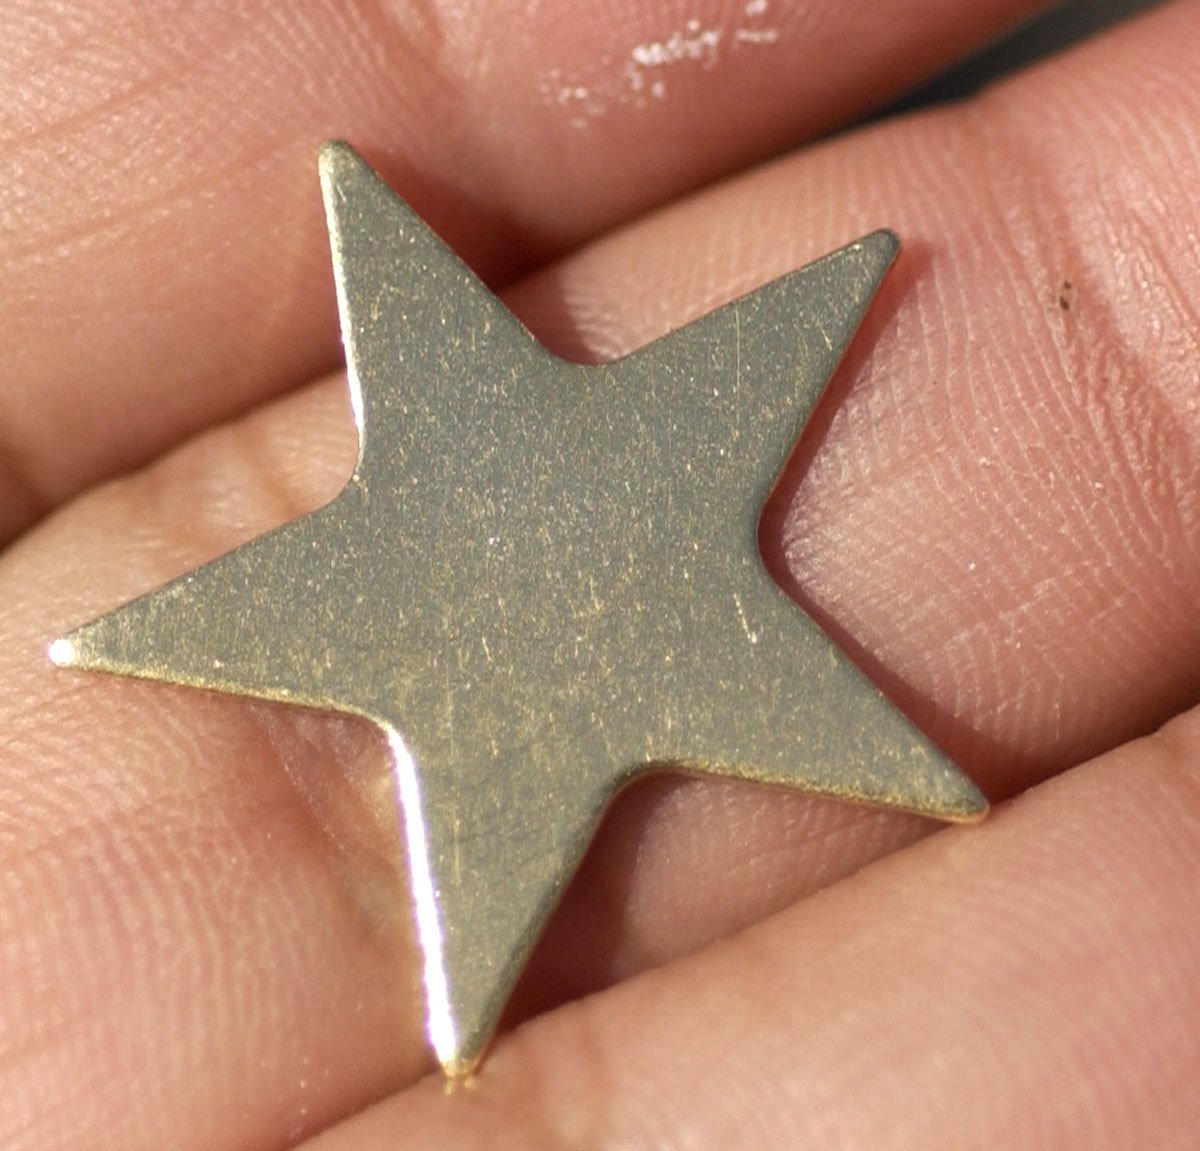 Brass Star 20g Blank Cutout for Metalworking Stamping Texturing Soldering Blanks - 6 pieces